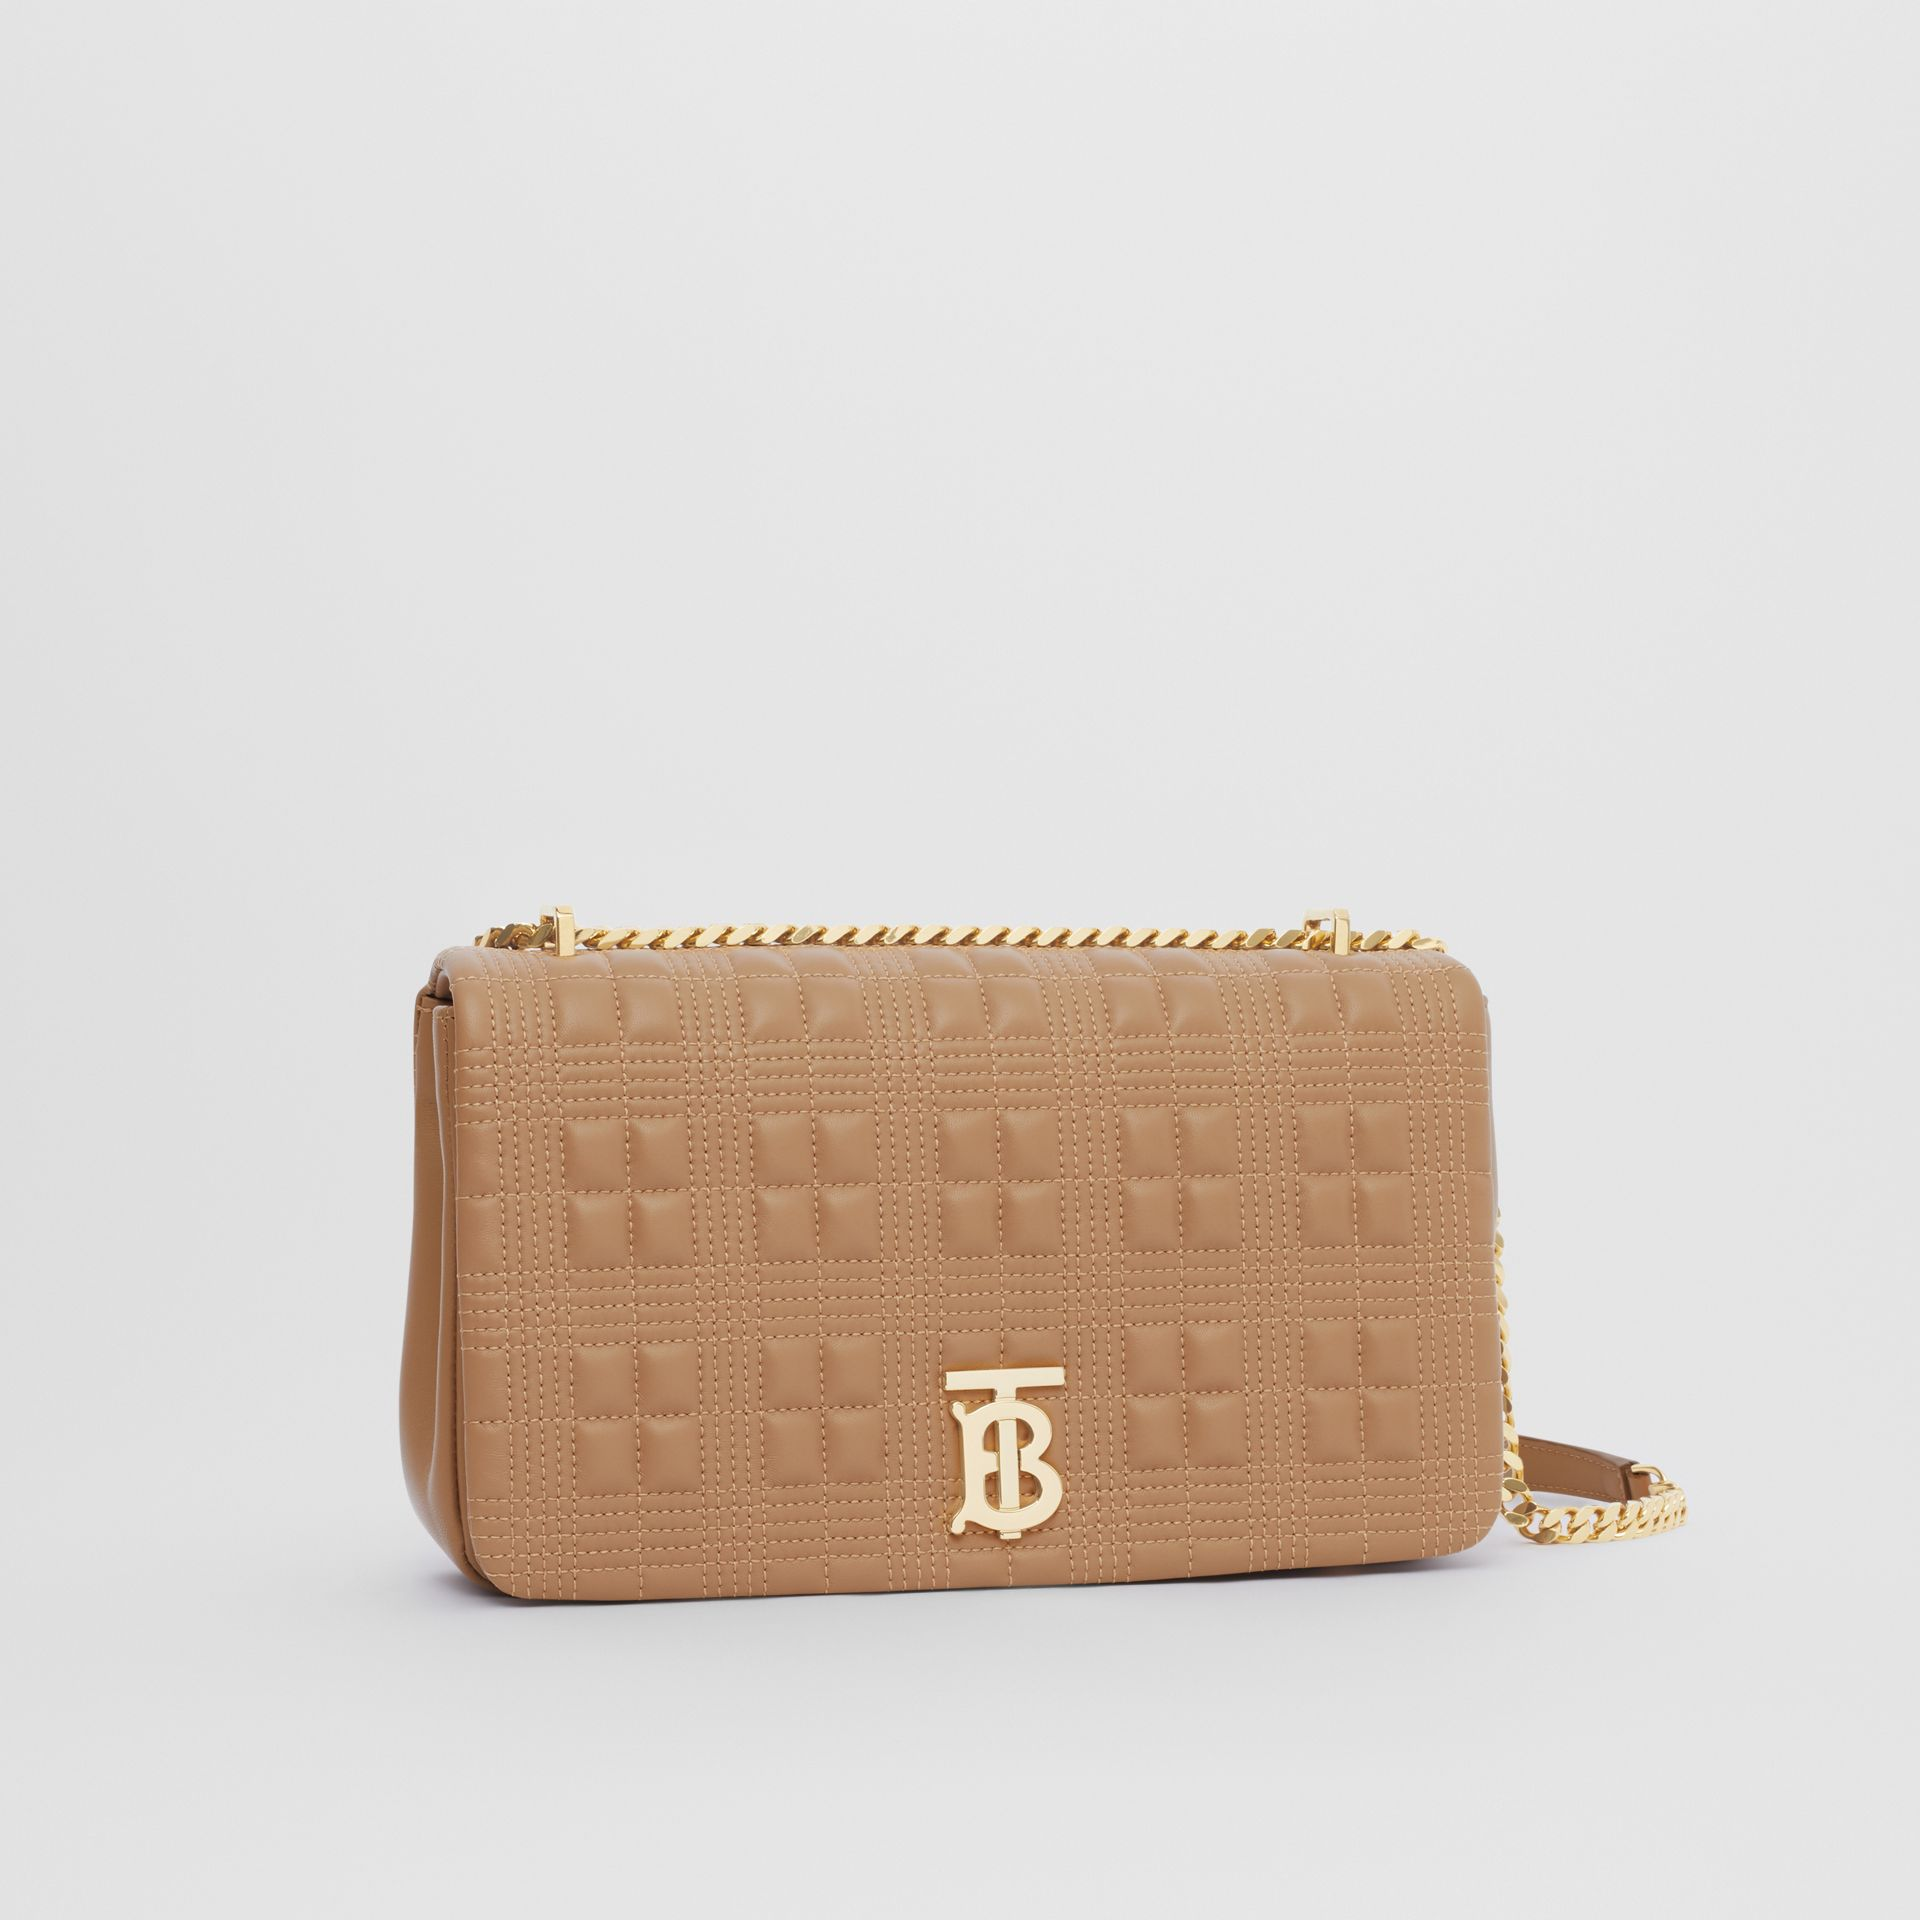 Medium Quilted Check Lambskin Lola Bag in Camel - Women | Burberry - gallery image 6